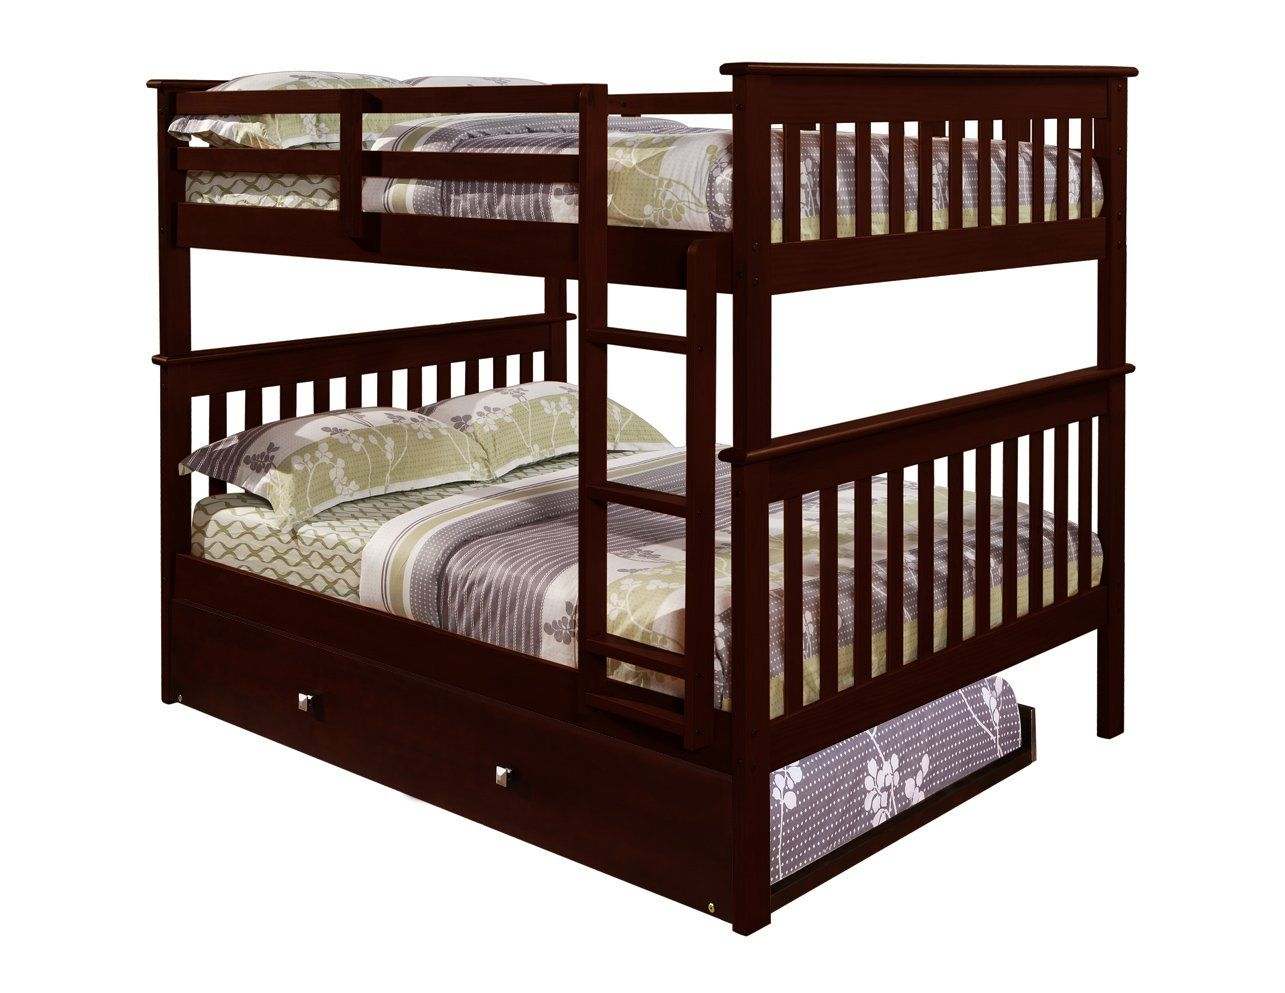 Bunk Bed Full Over Full With Trundle In Cappuccino 539 Amazon Bunk Beds Bunk Beds With Stairs Double Bunk Beds